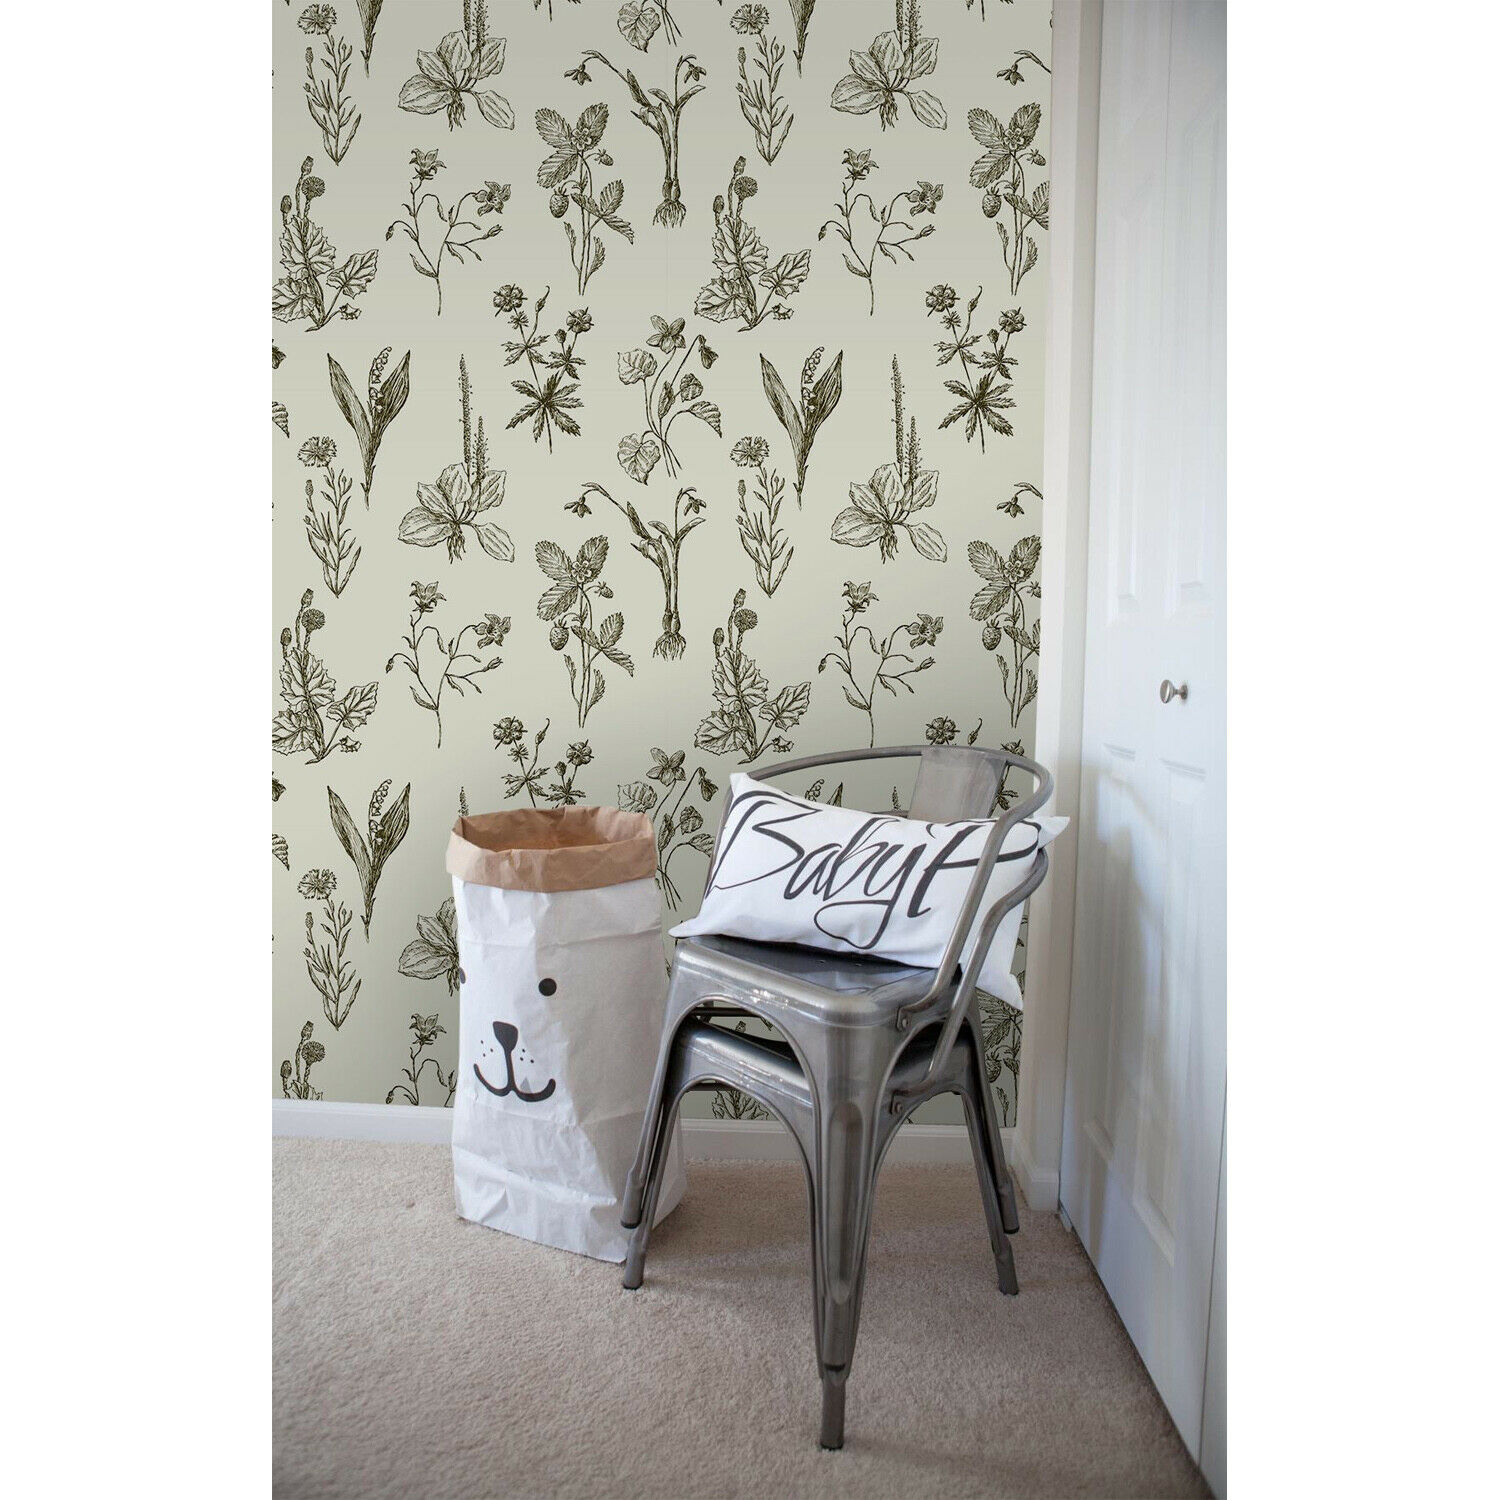 Sketches wildflowers Removable wallpaper Golden wall mural wall art